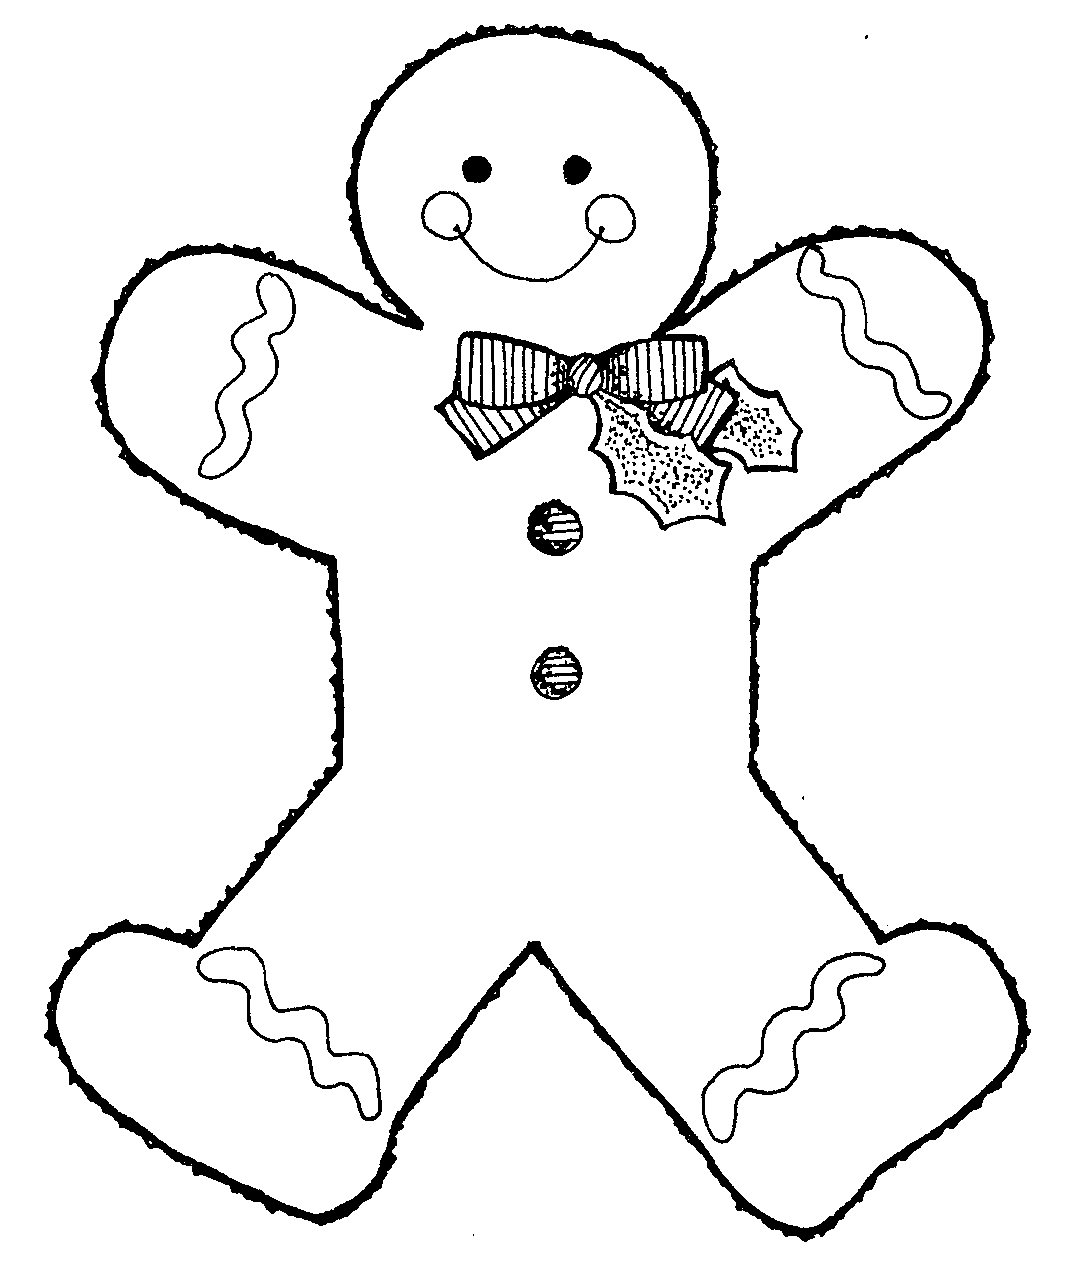 Gingerbread_Man_Coloring_Pictures_02